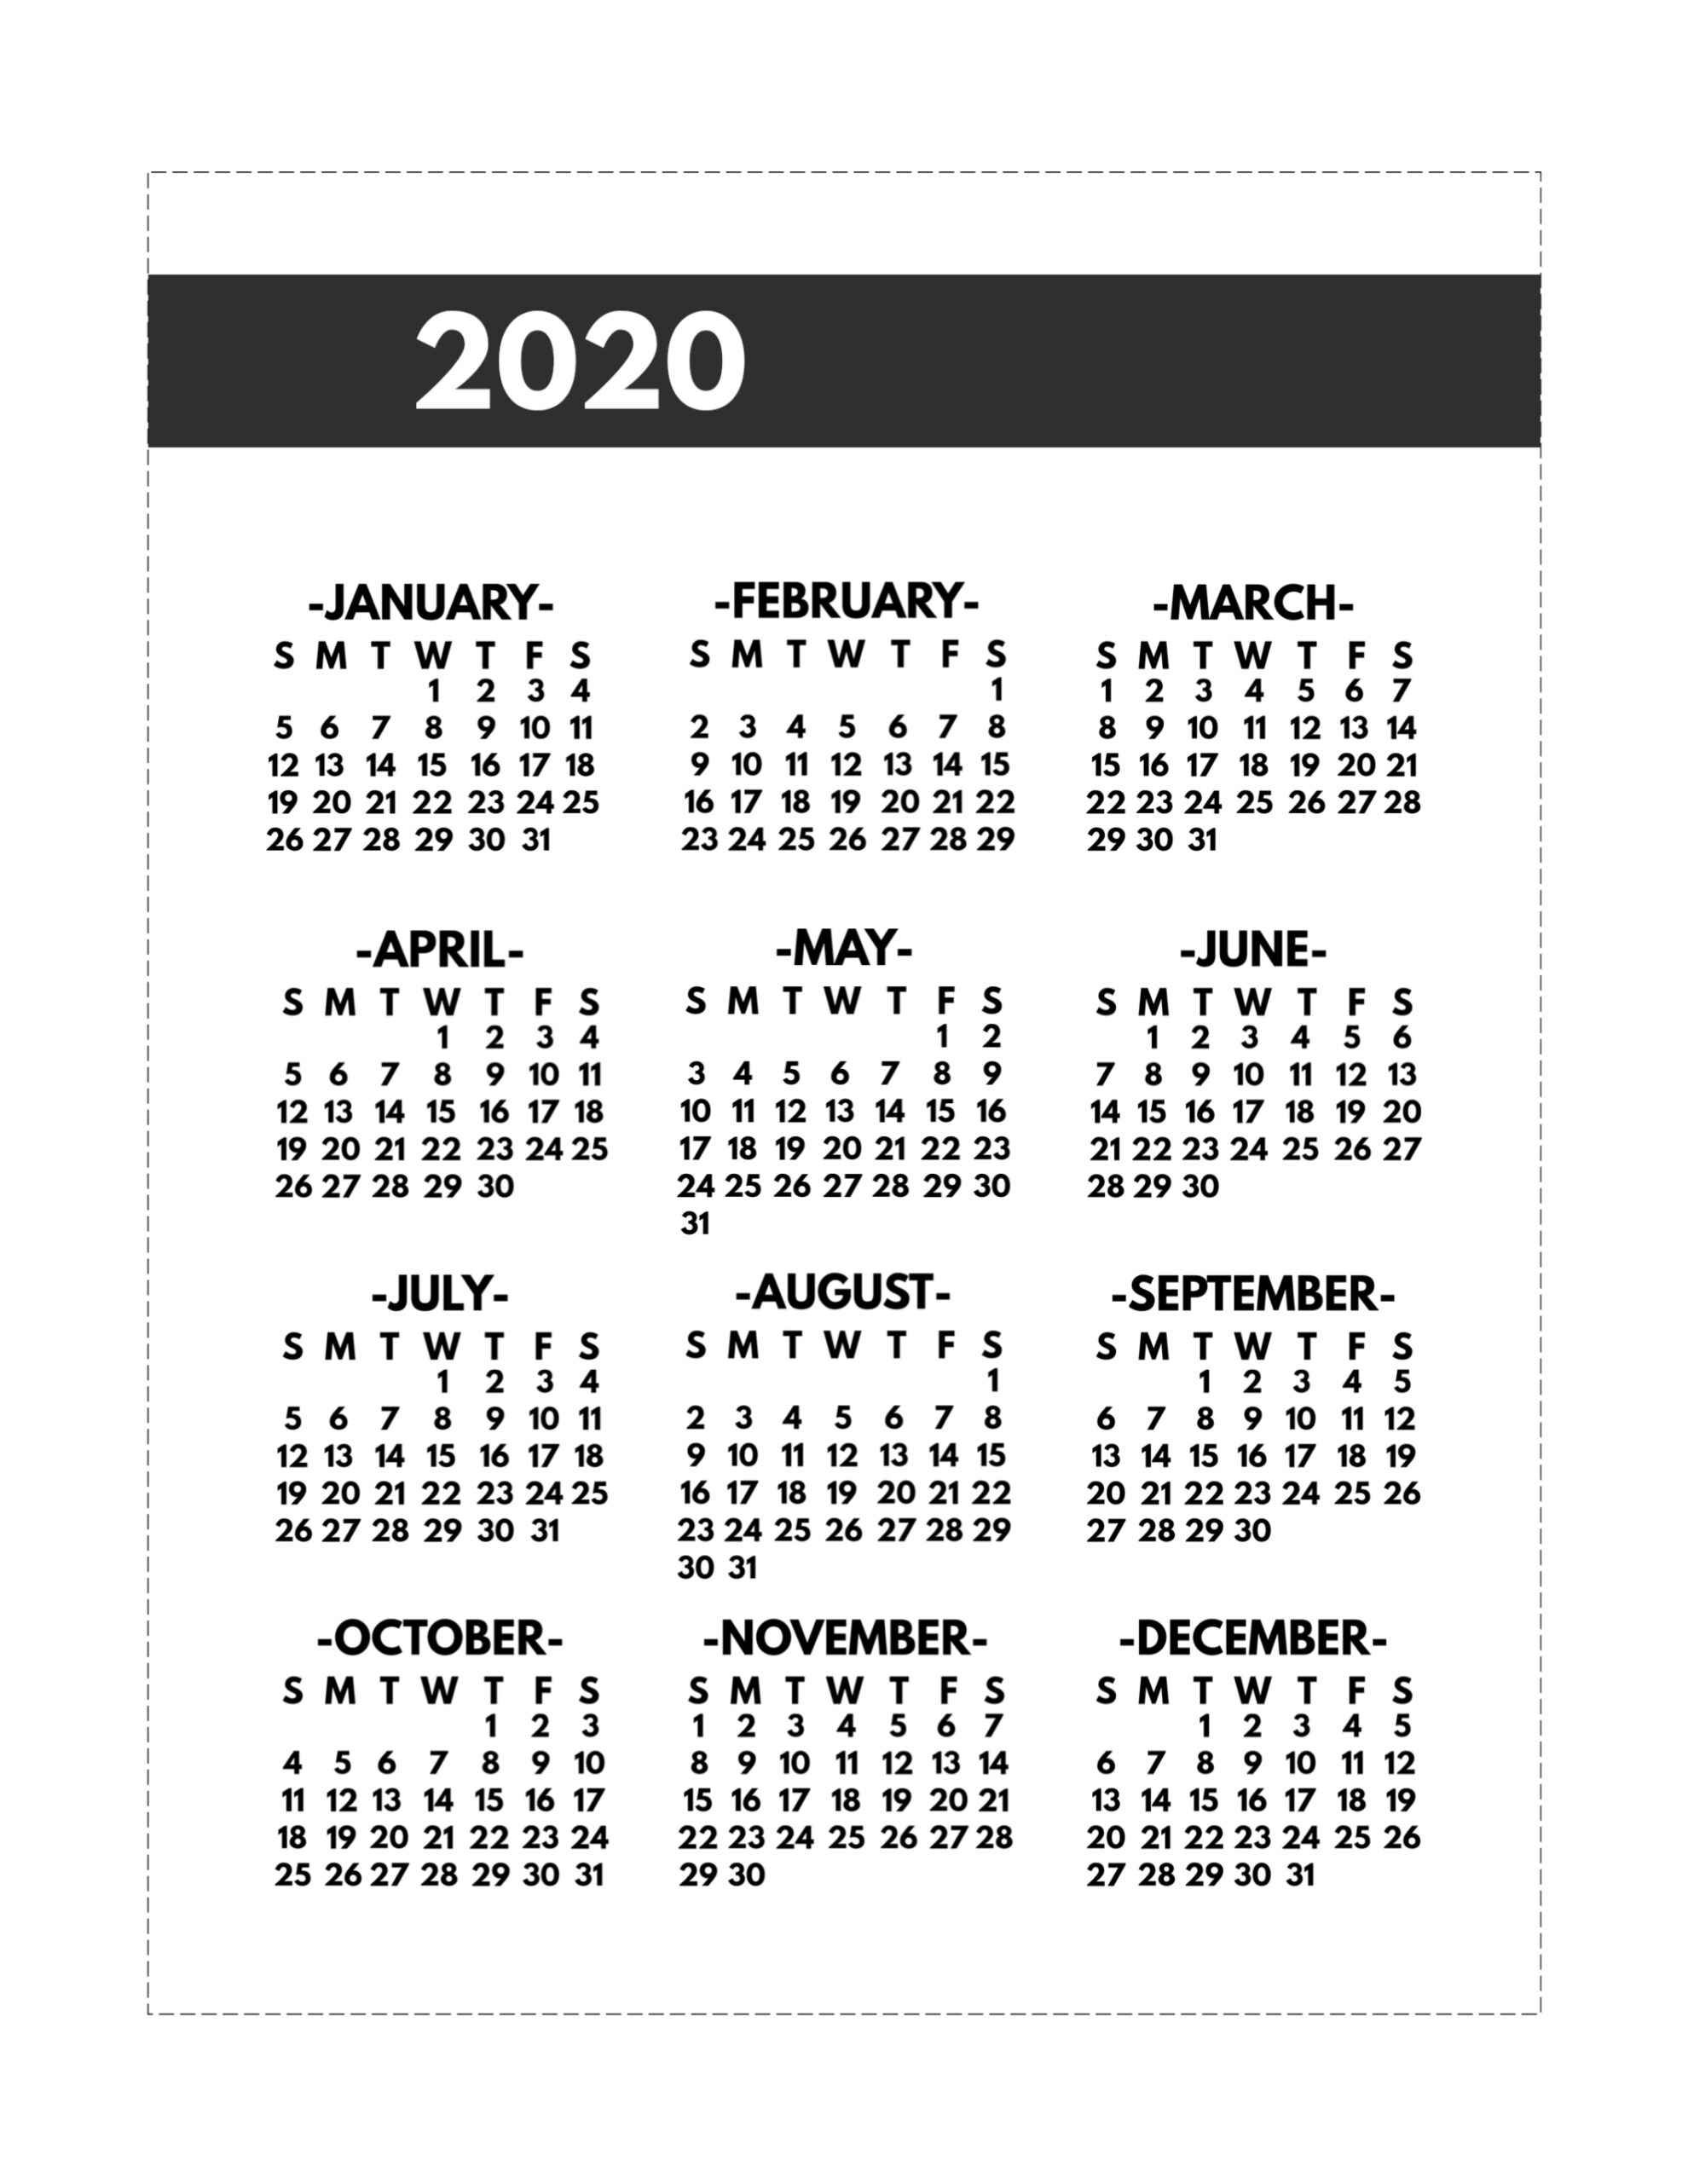 2020 Printable One Page Year At A Glance Calendar - Paper intended for Year At A Glance Calendar 2020 Free